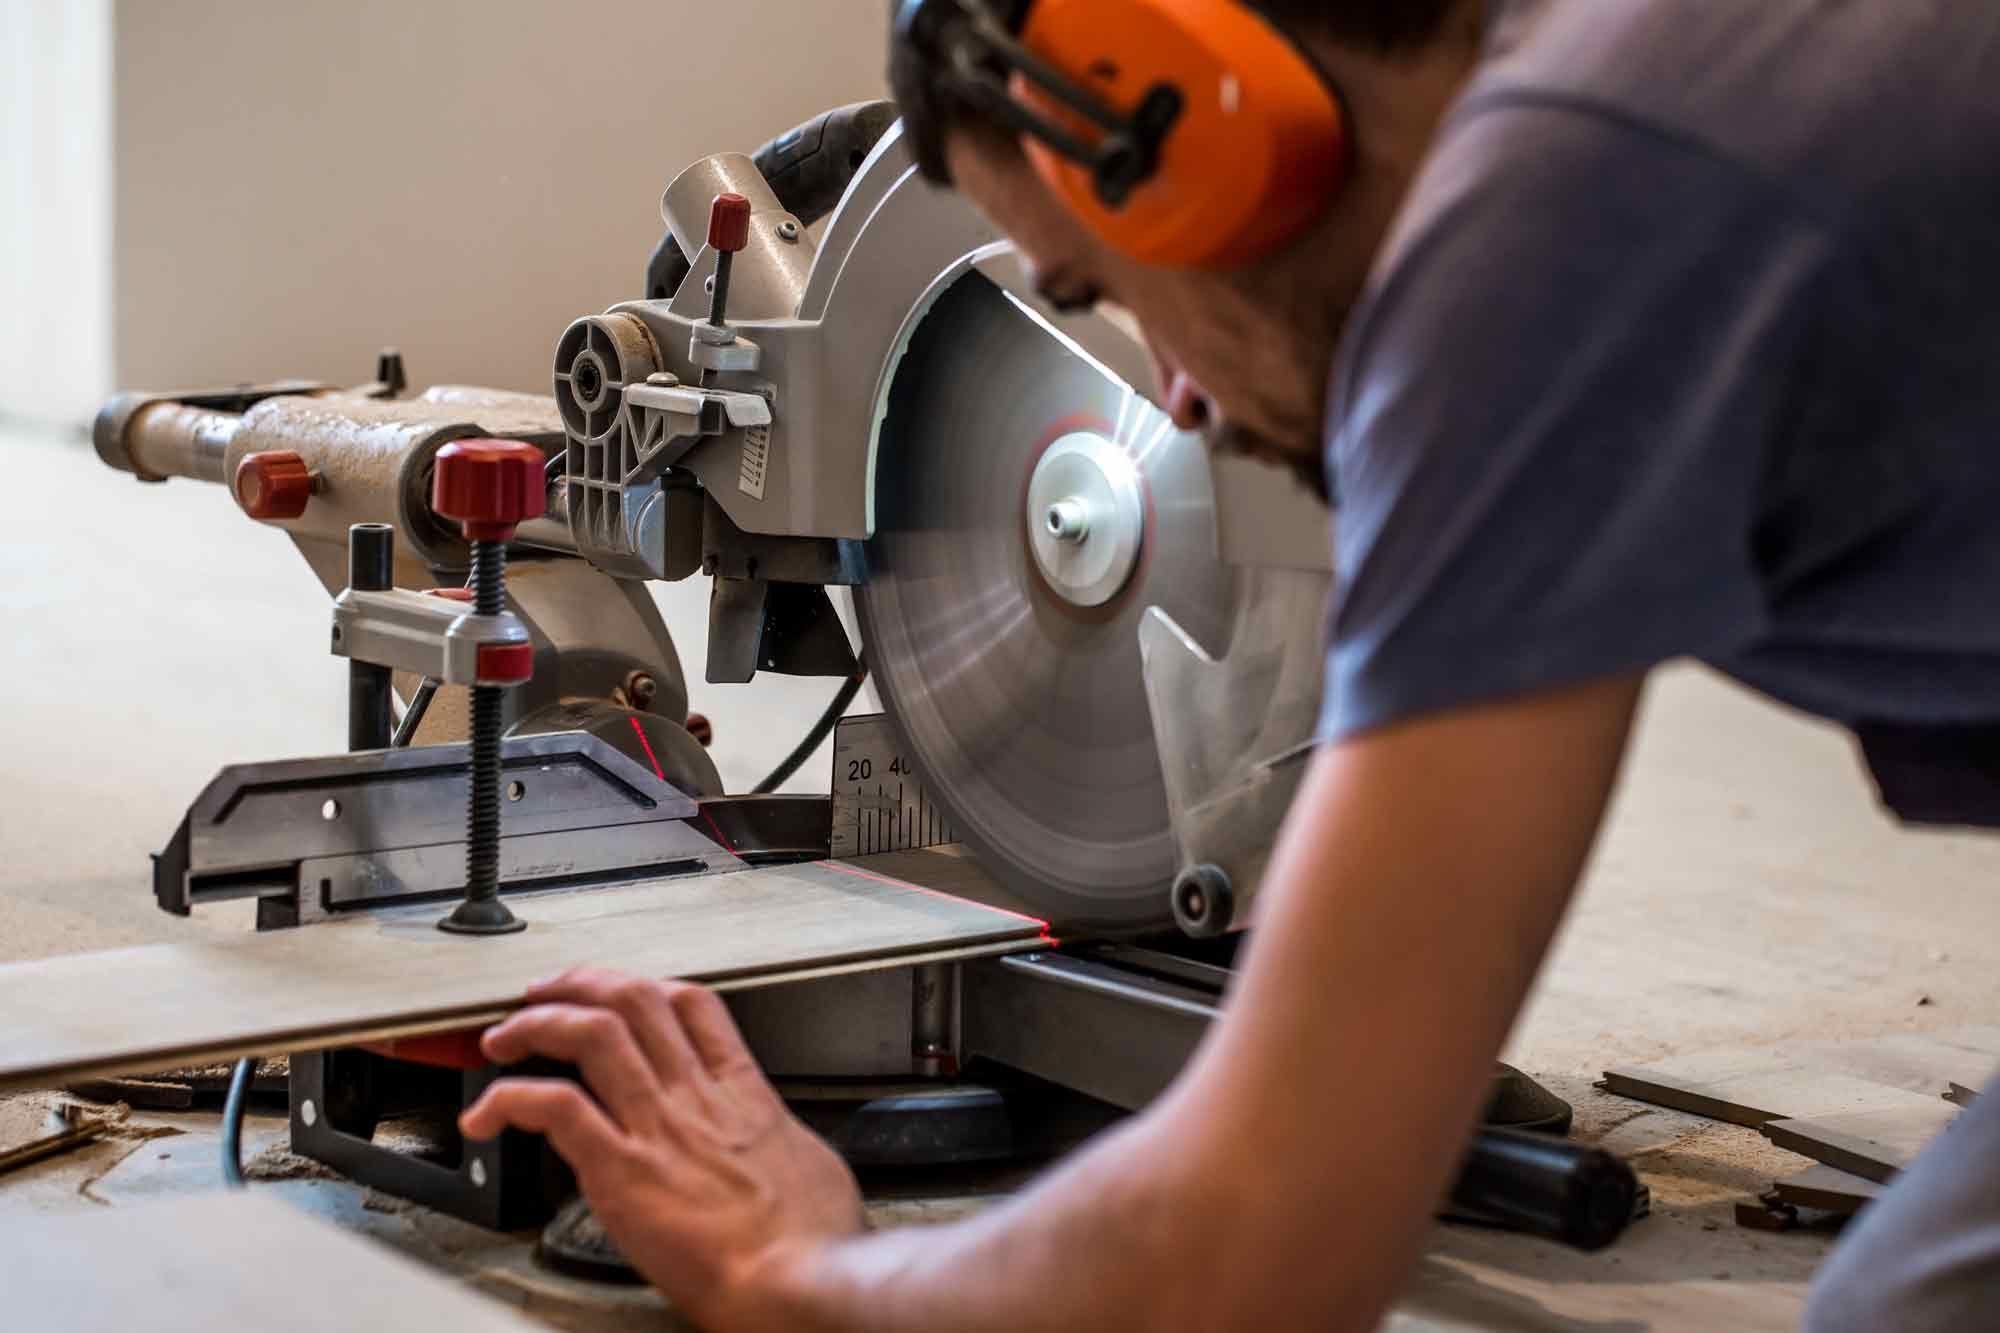 Miter Saw Vs Table Saw Which Is Right For Your Needs Woodworking Woodworking Saws Miter Saw